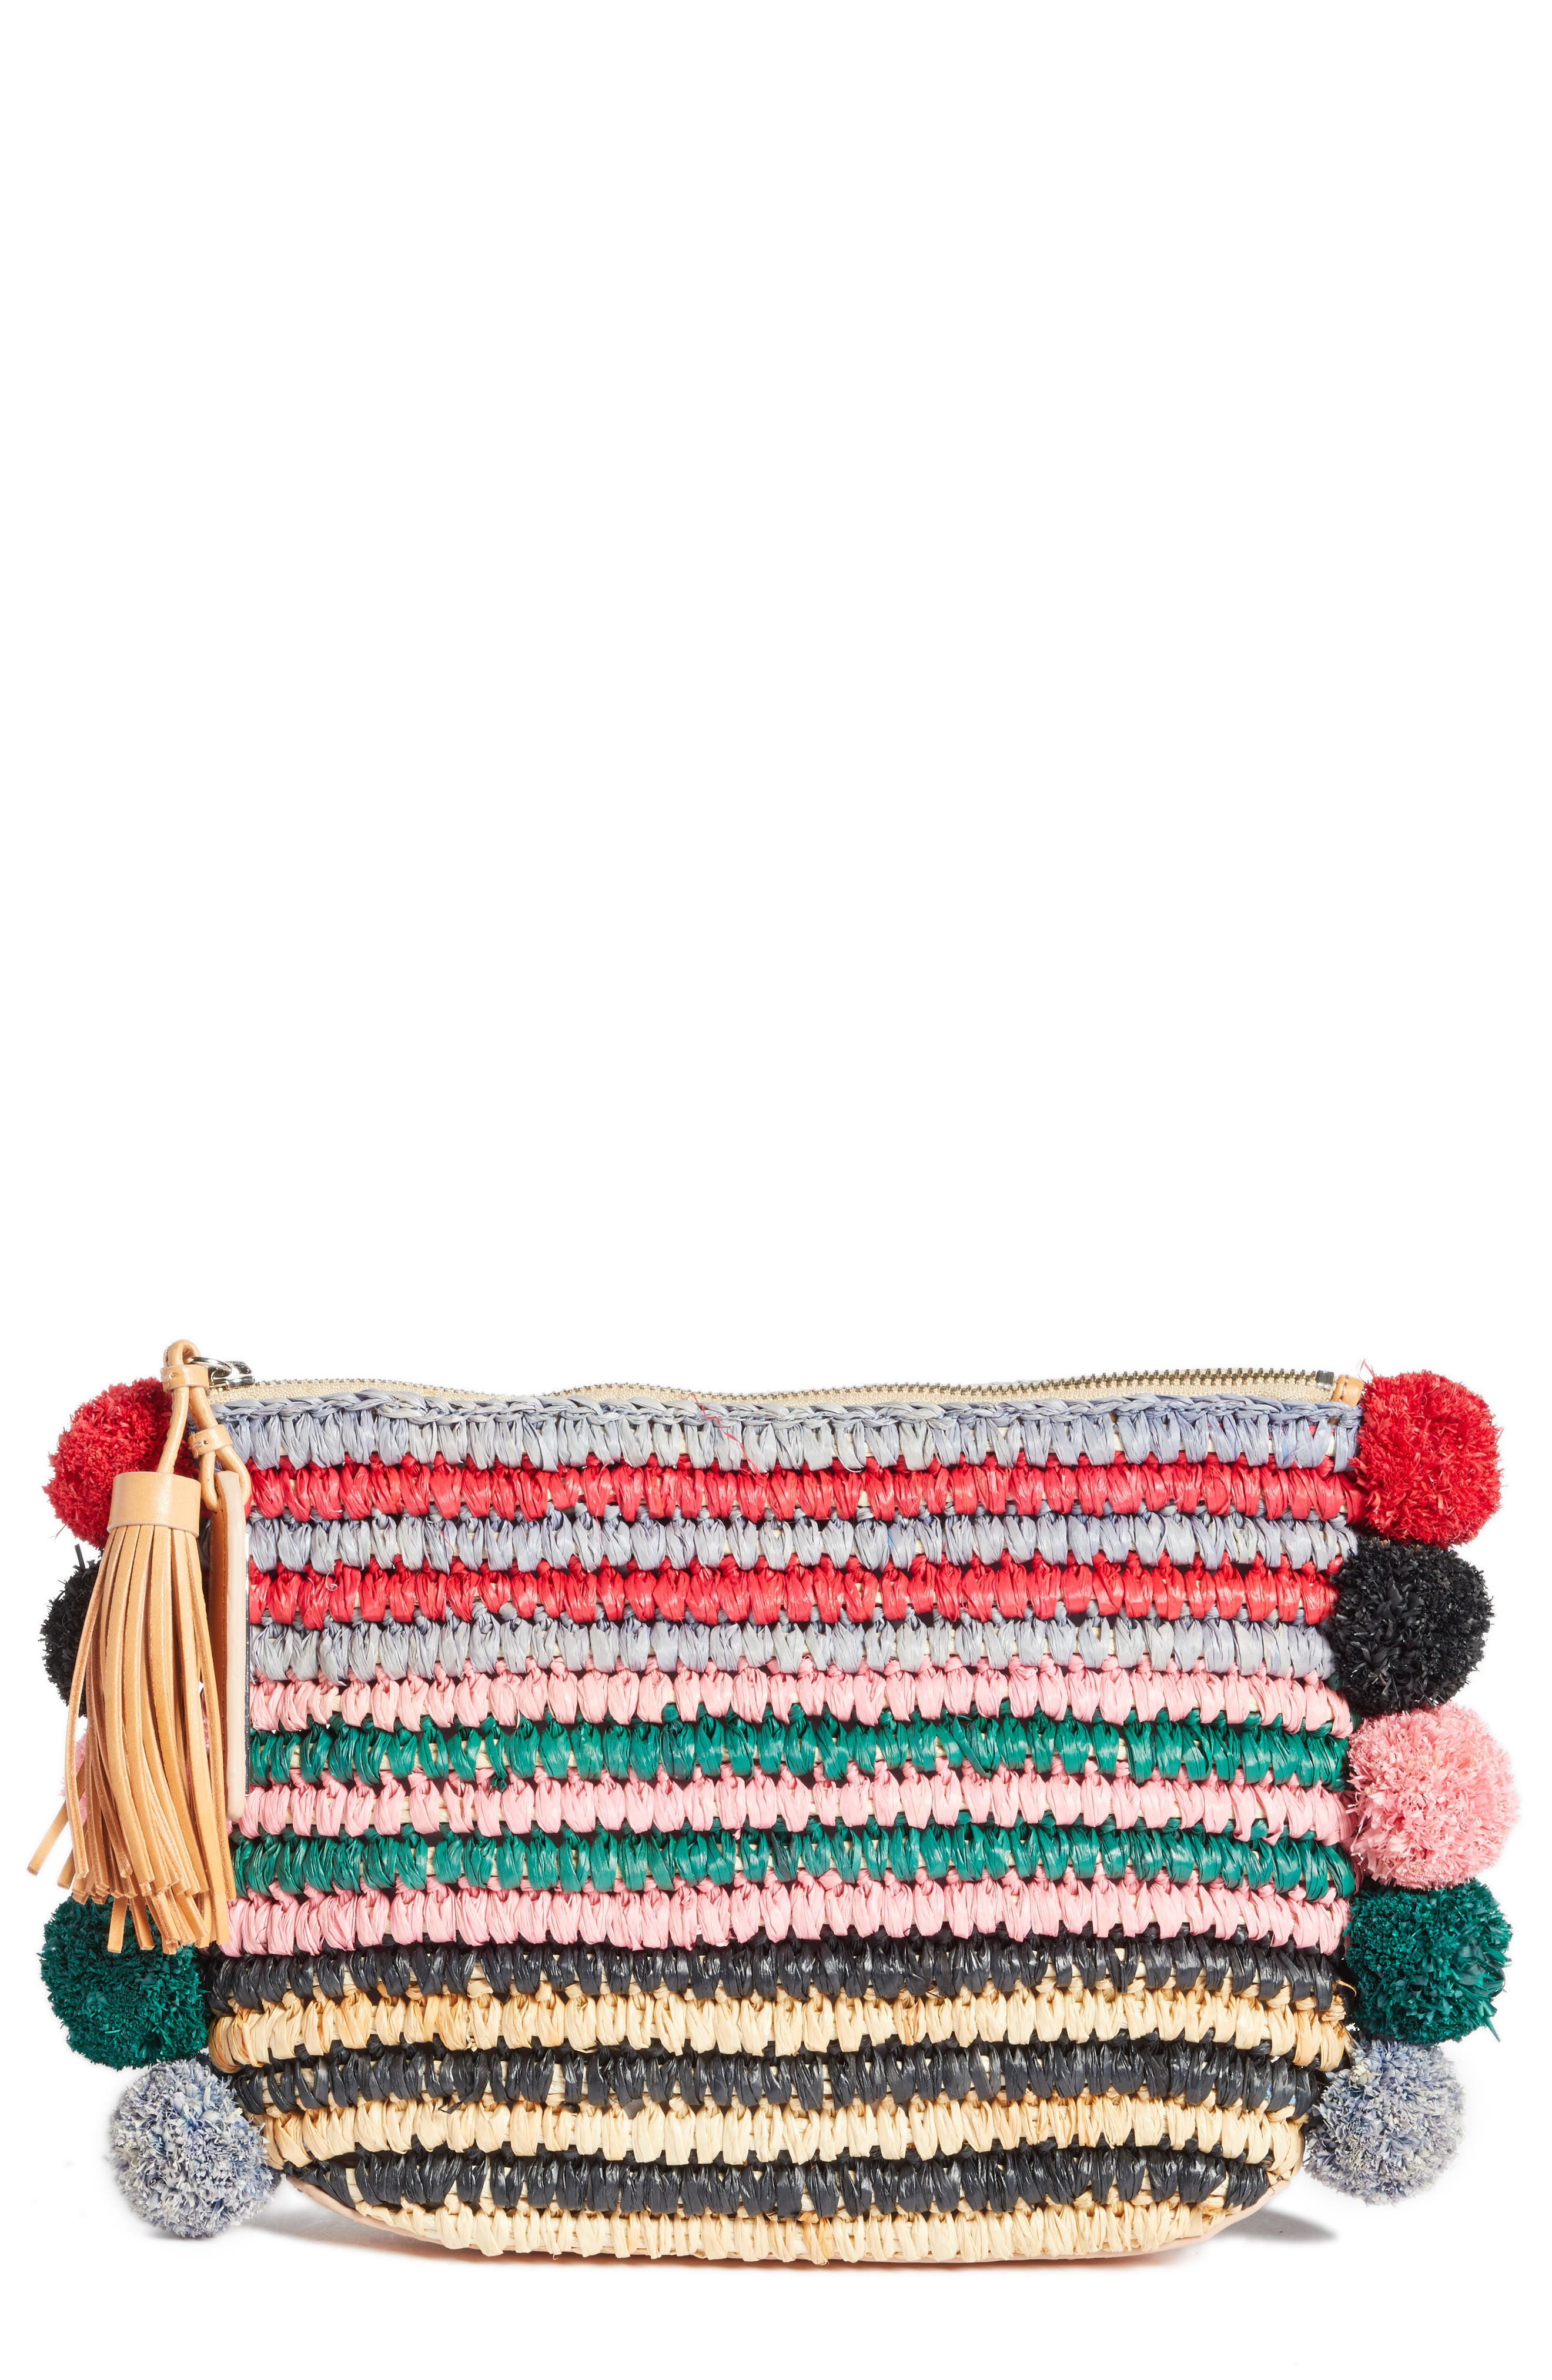 Alternate Image 1 Selected - Loeffler Randall Straw Tassel Pouch